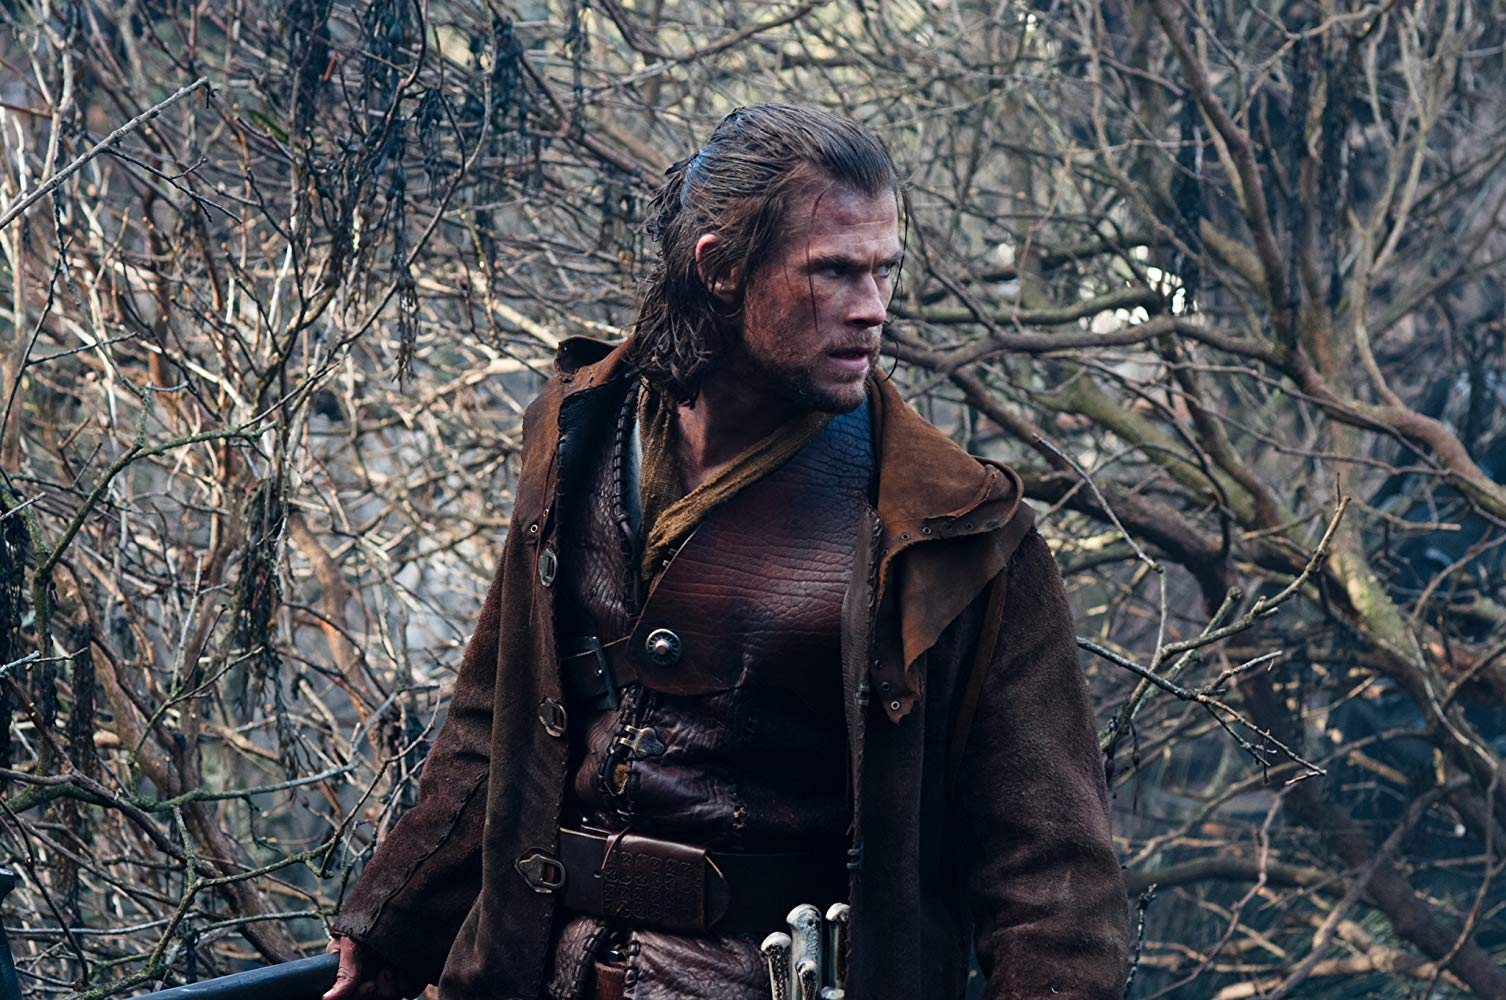 Chris Hemsworth as The Huntsman in Snow White and the Huntsman (2012)